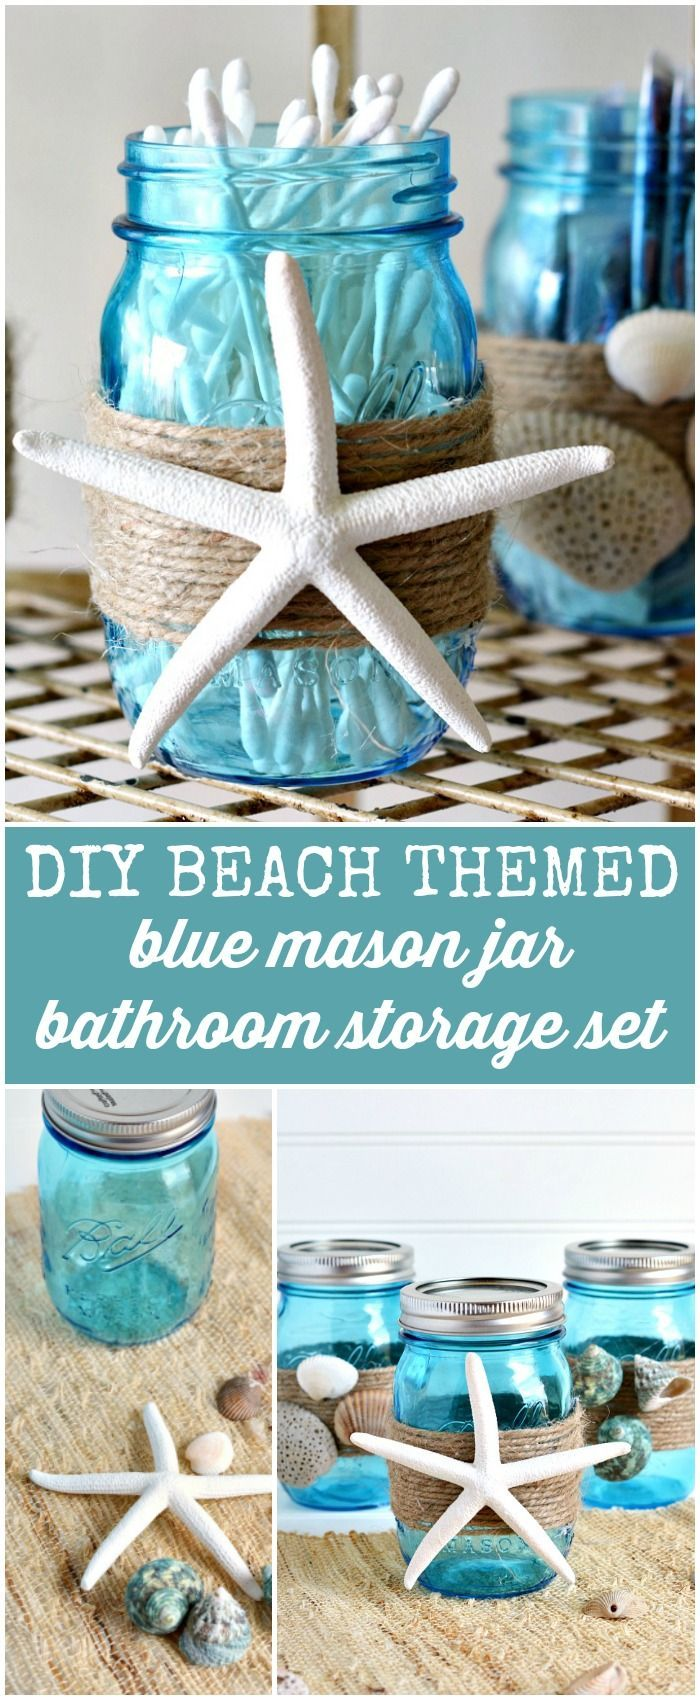 25 best ideas about beach themed bathrooms on pinterest. Black Bedroom Furniture Sets. Home Design Ideas